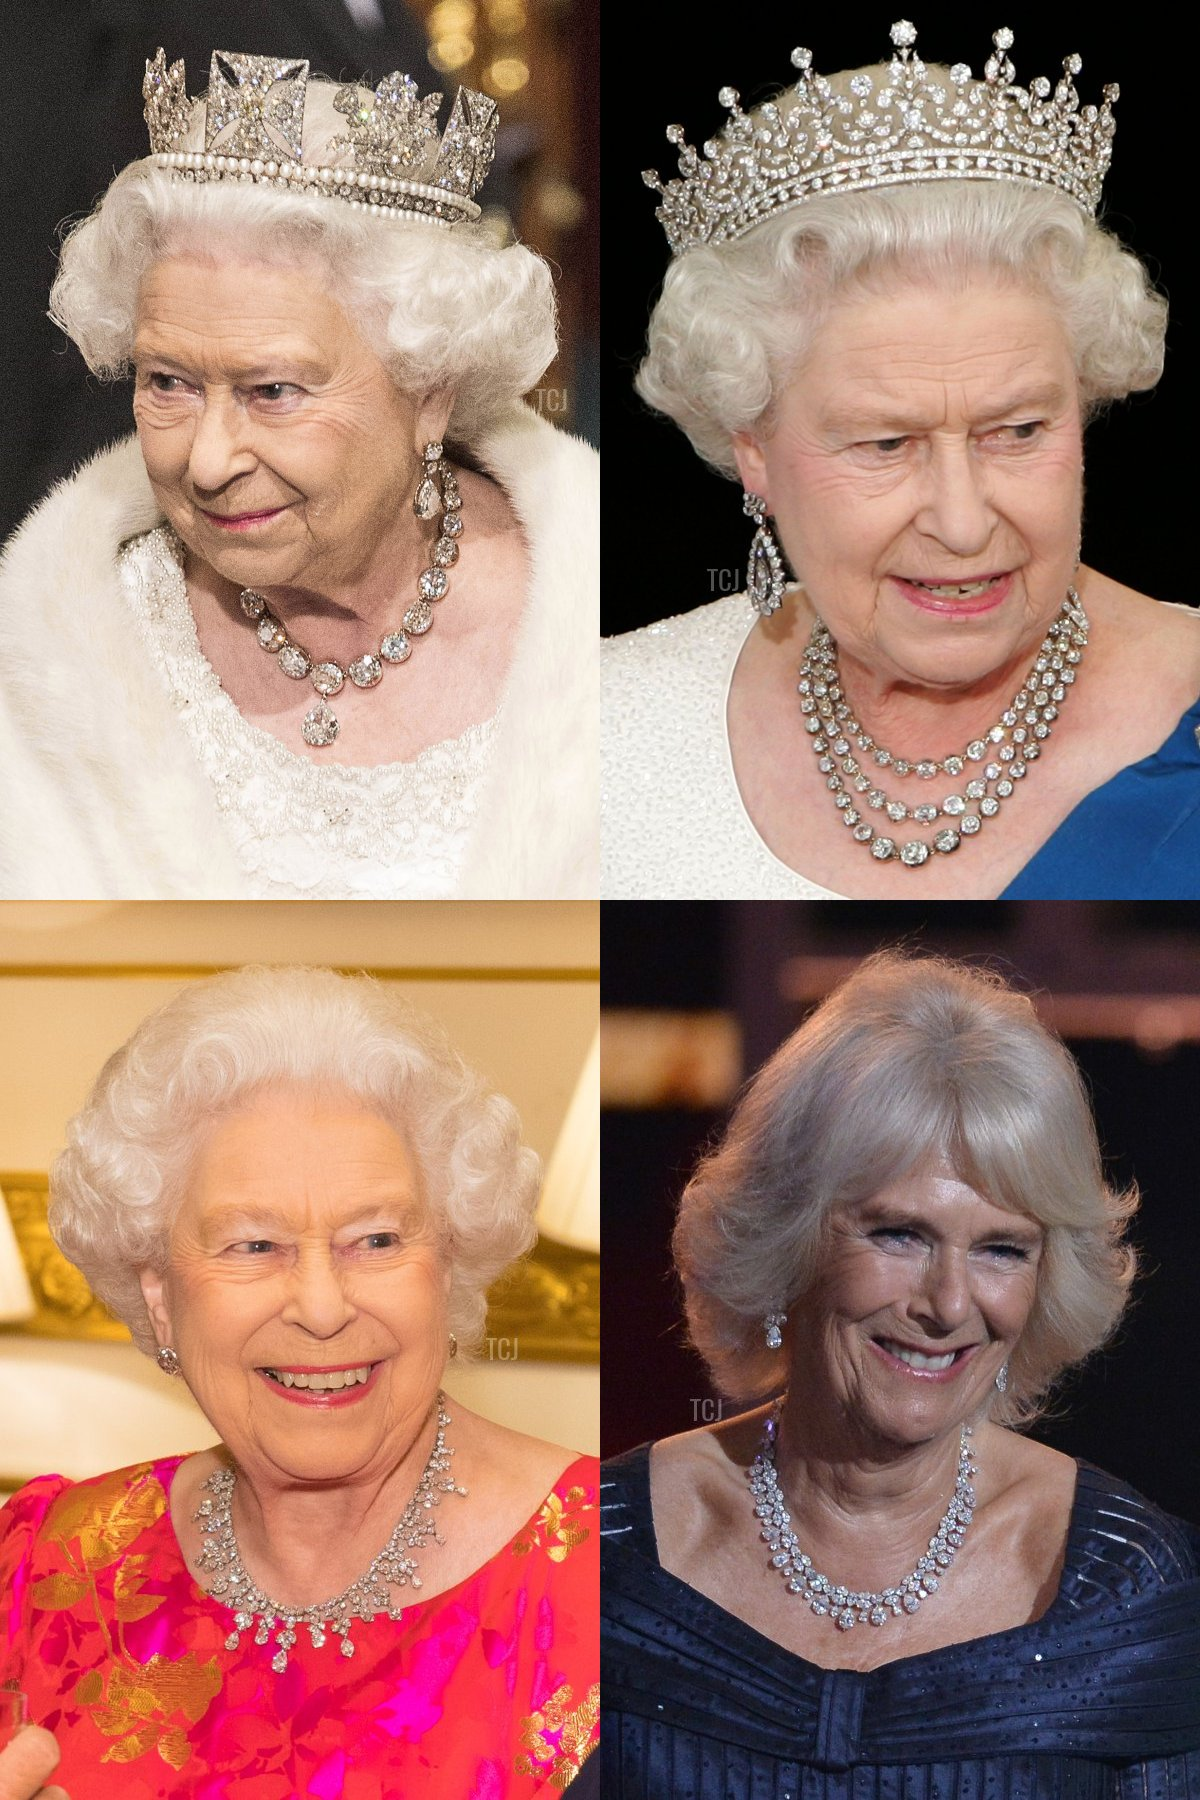 Clockwise (from top L): The Coronation Necklace, Queen Elizabeth II's Festoon Necklace, Camilla's Pear-Shaped Diamond Necklace, and the King Khalid Necklace